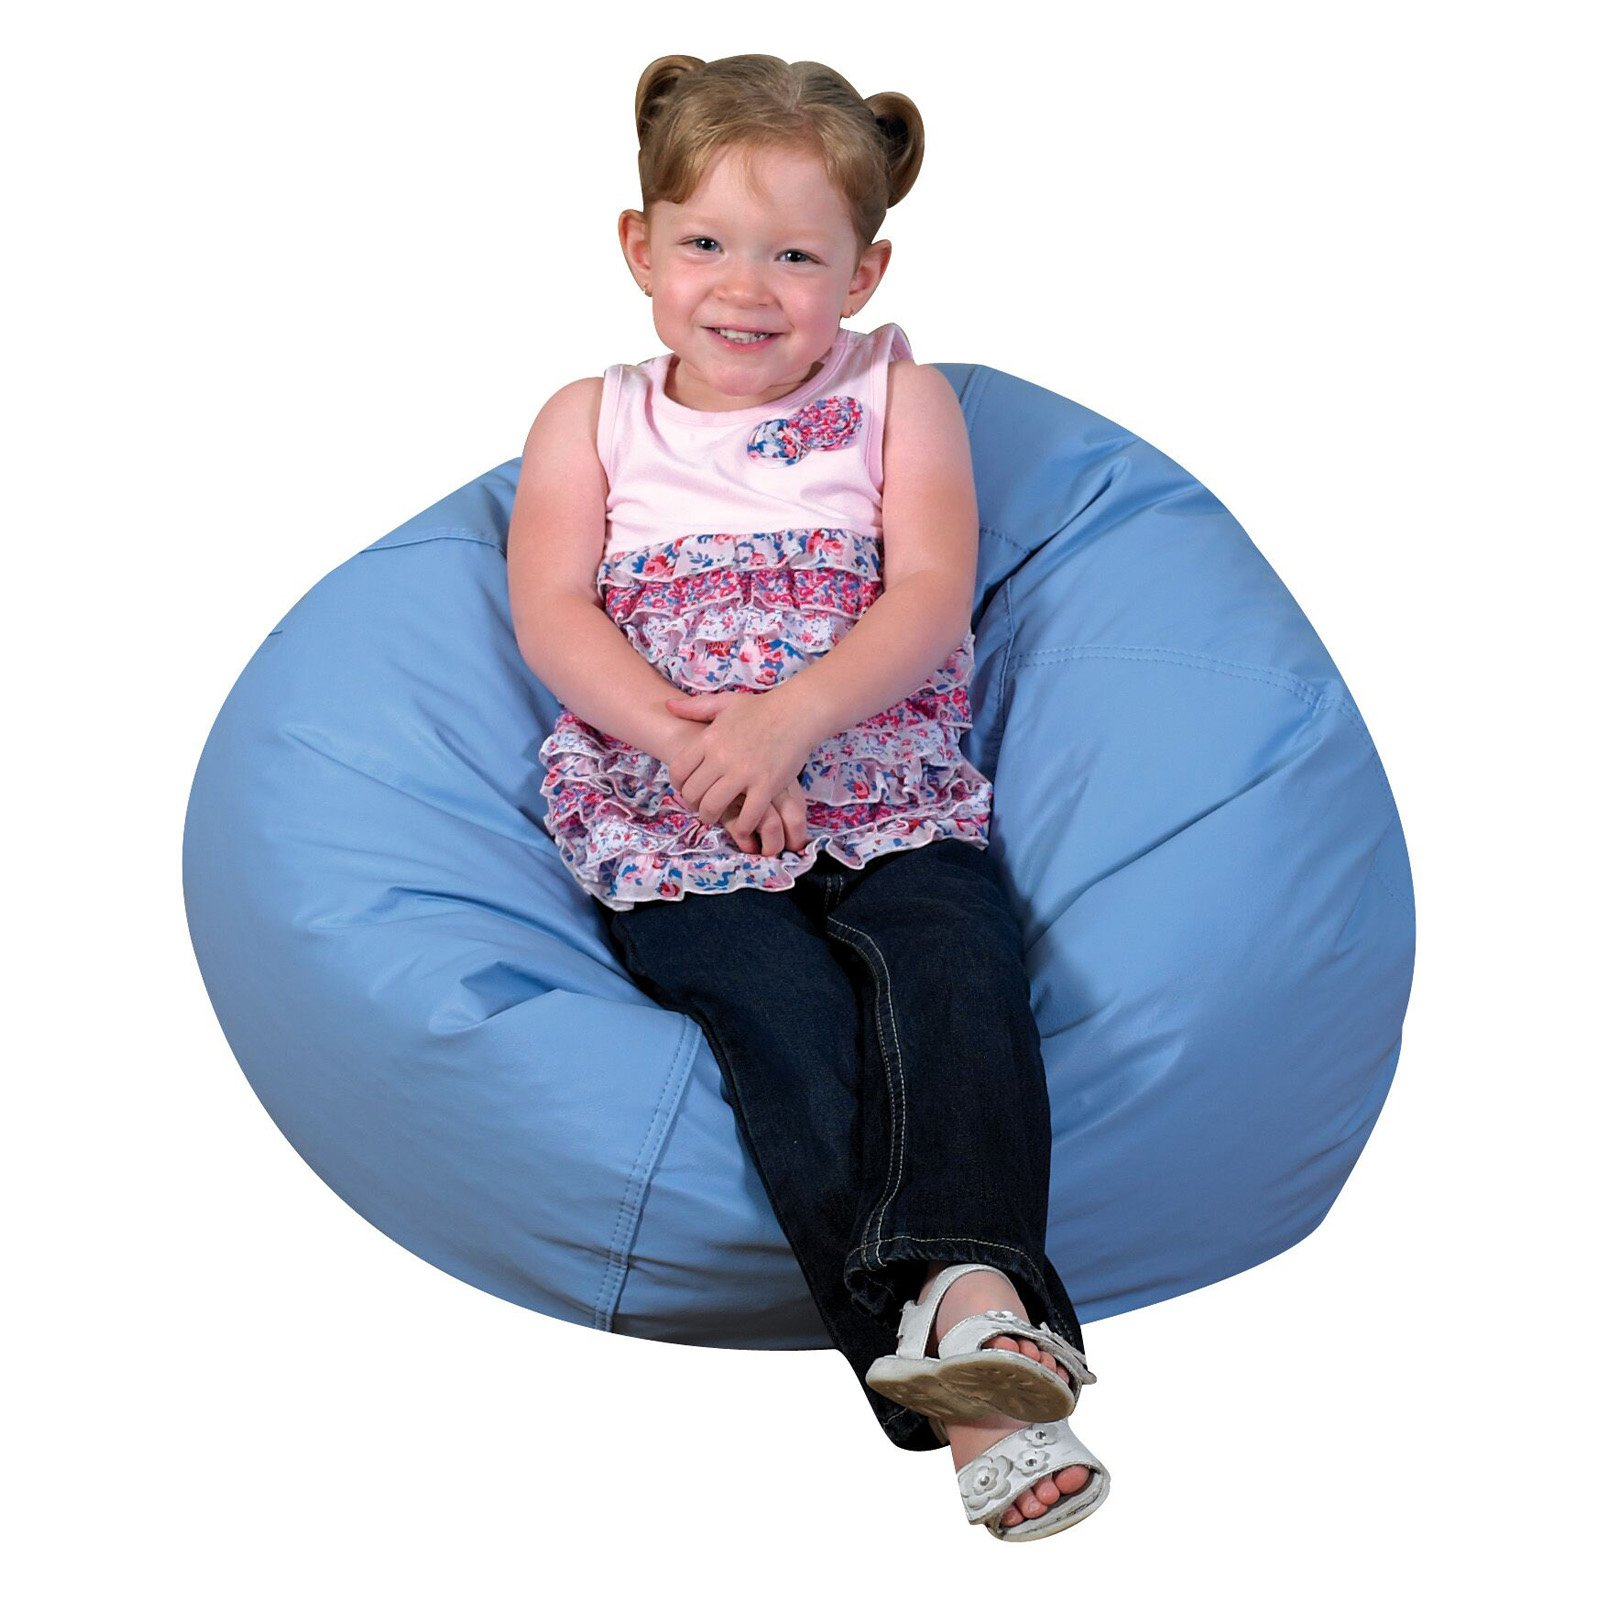 Tremendous Childrens Factory Round Bean Bag Almond In 2019 Products Alphanode Cool Chair Designs And Ideas Alphanodeonline